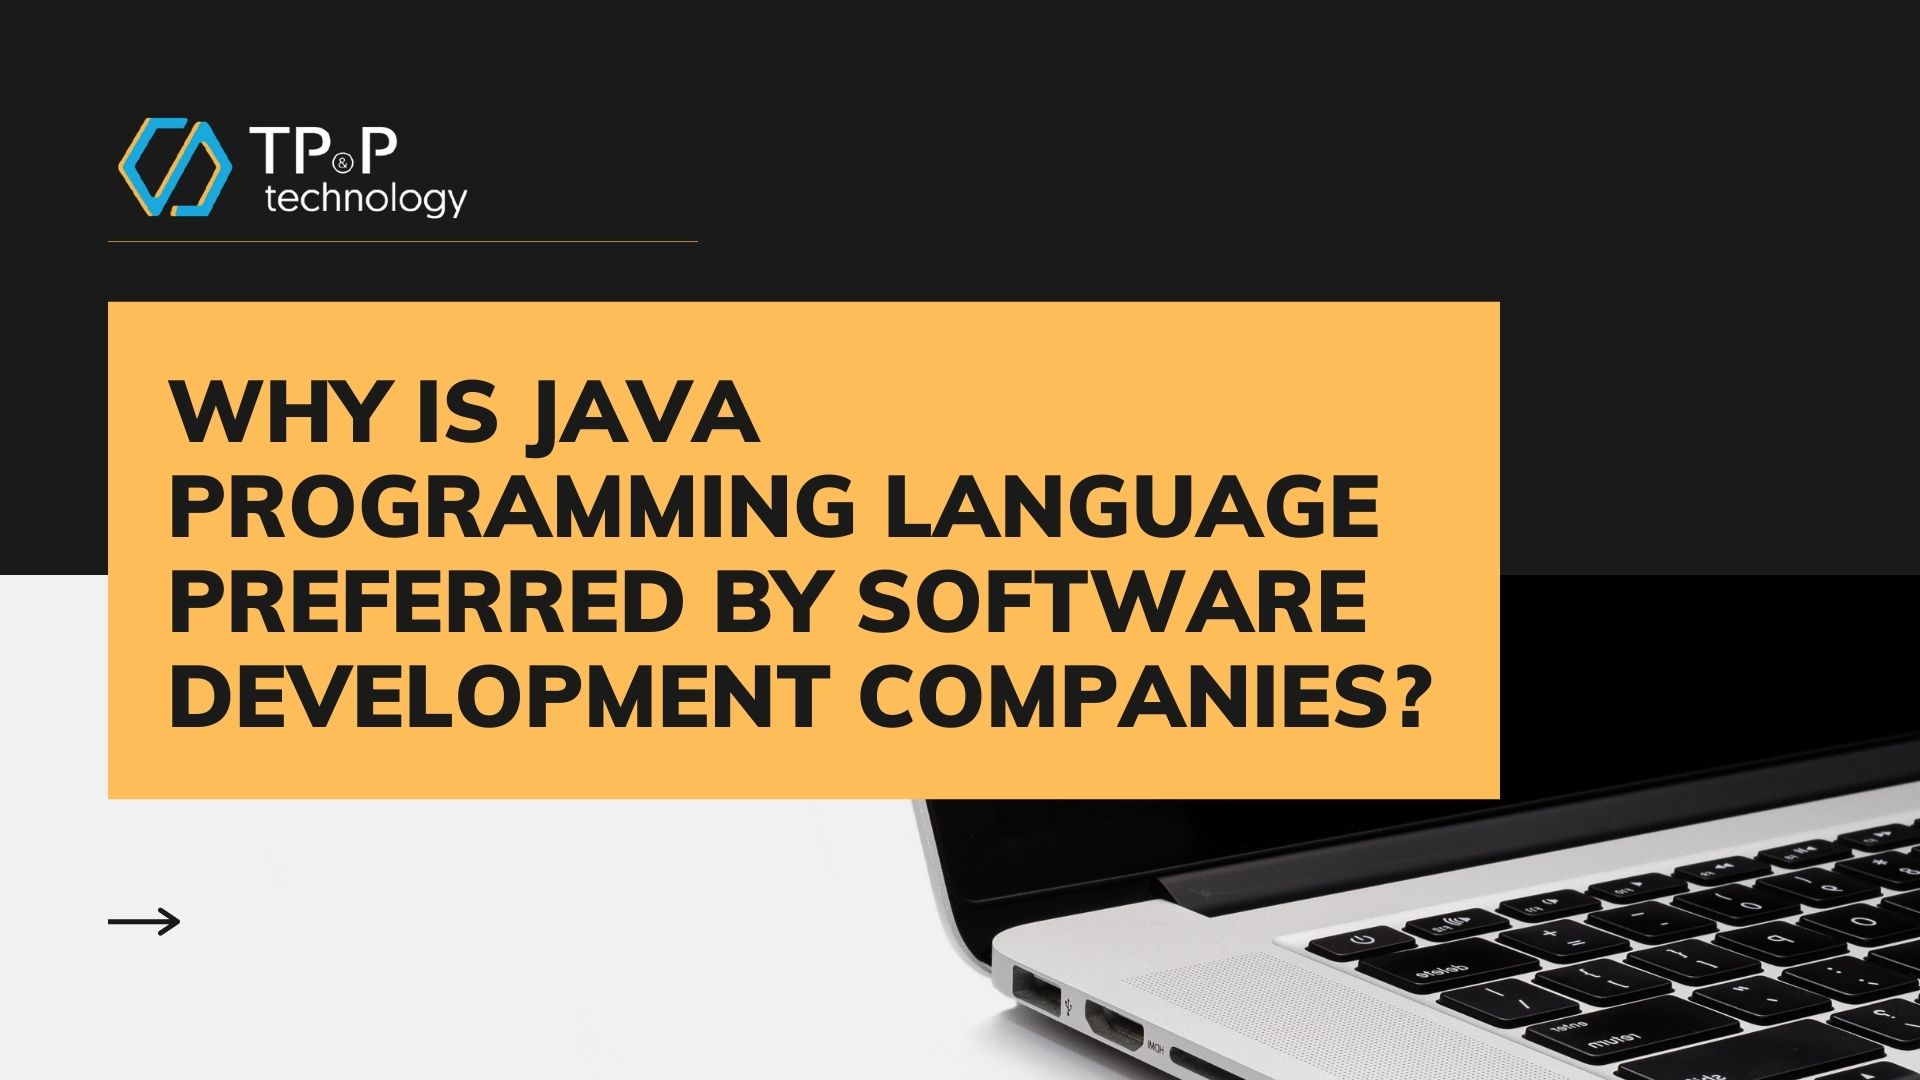 Why Is Java Programming Language Preferred By Software Development Companies?